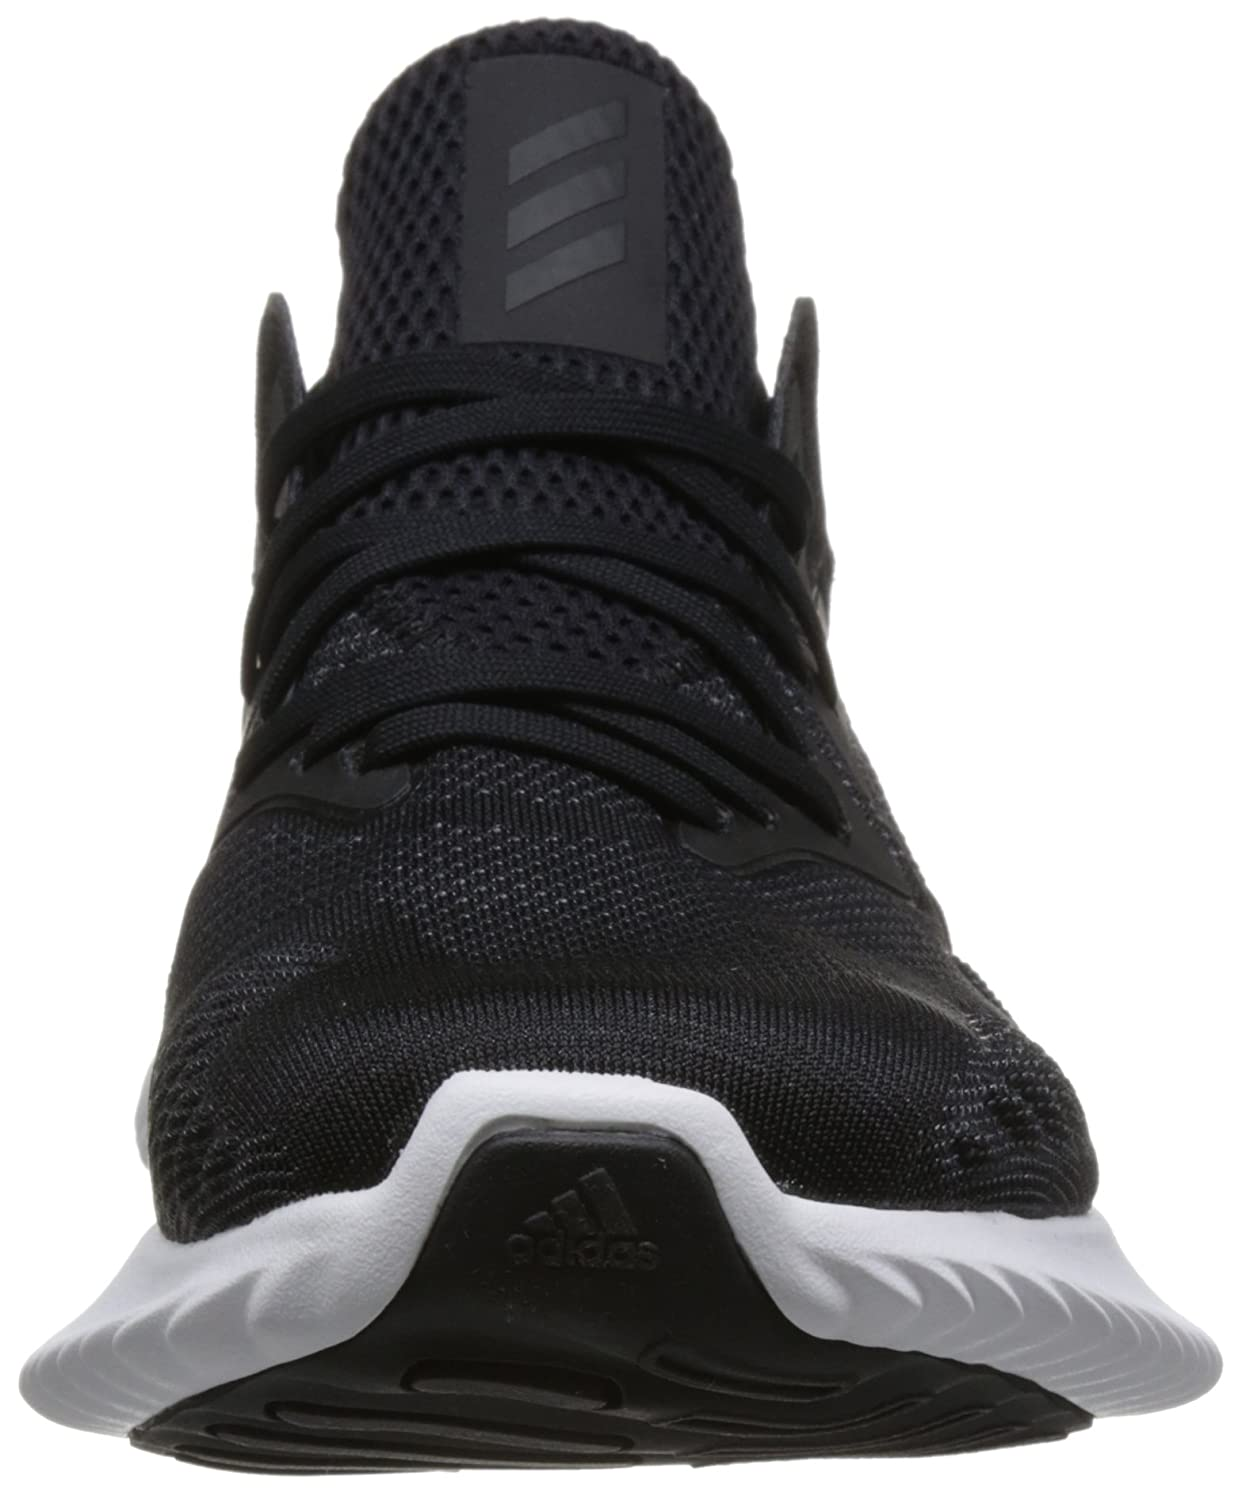 new products 827c7 fbe81 ... adidas adidas adidas Alphabounce Beyond M, Zapatillas de Trail Running  para Hombre f6ddbe ...